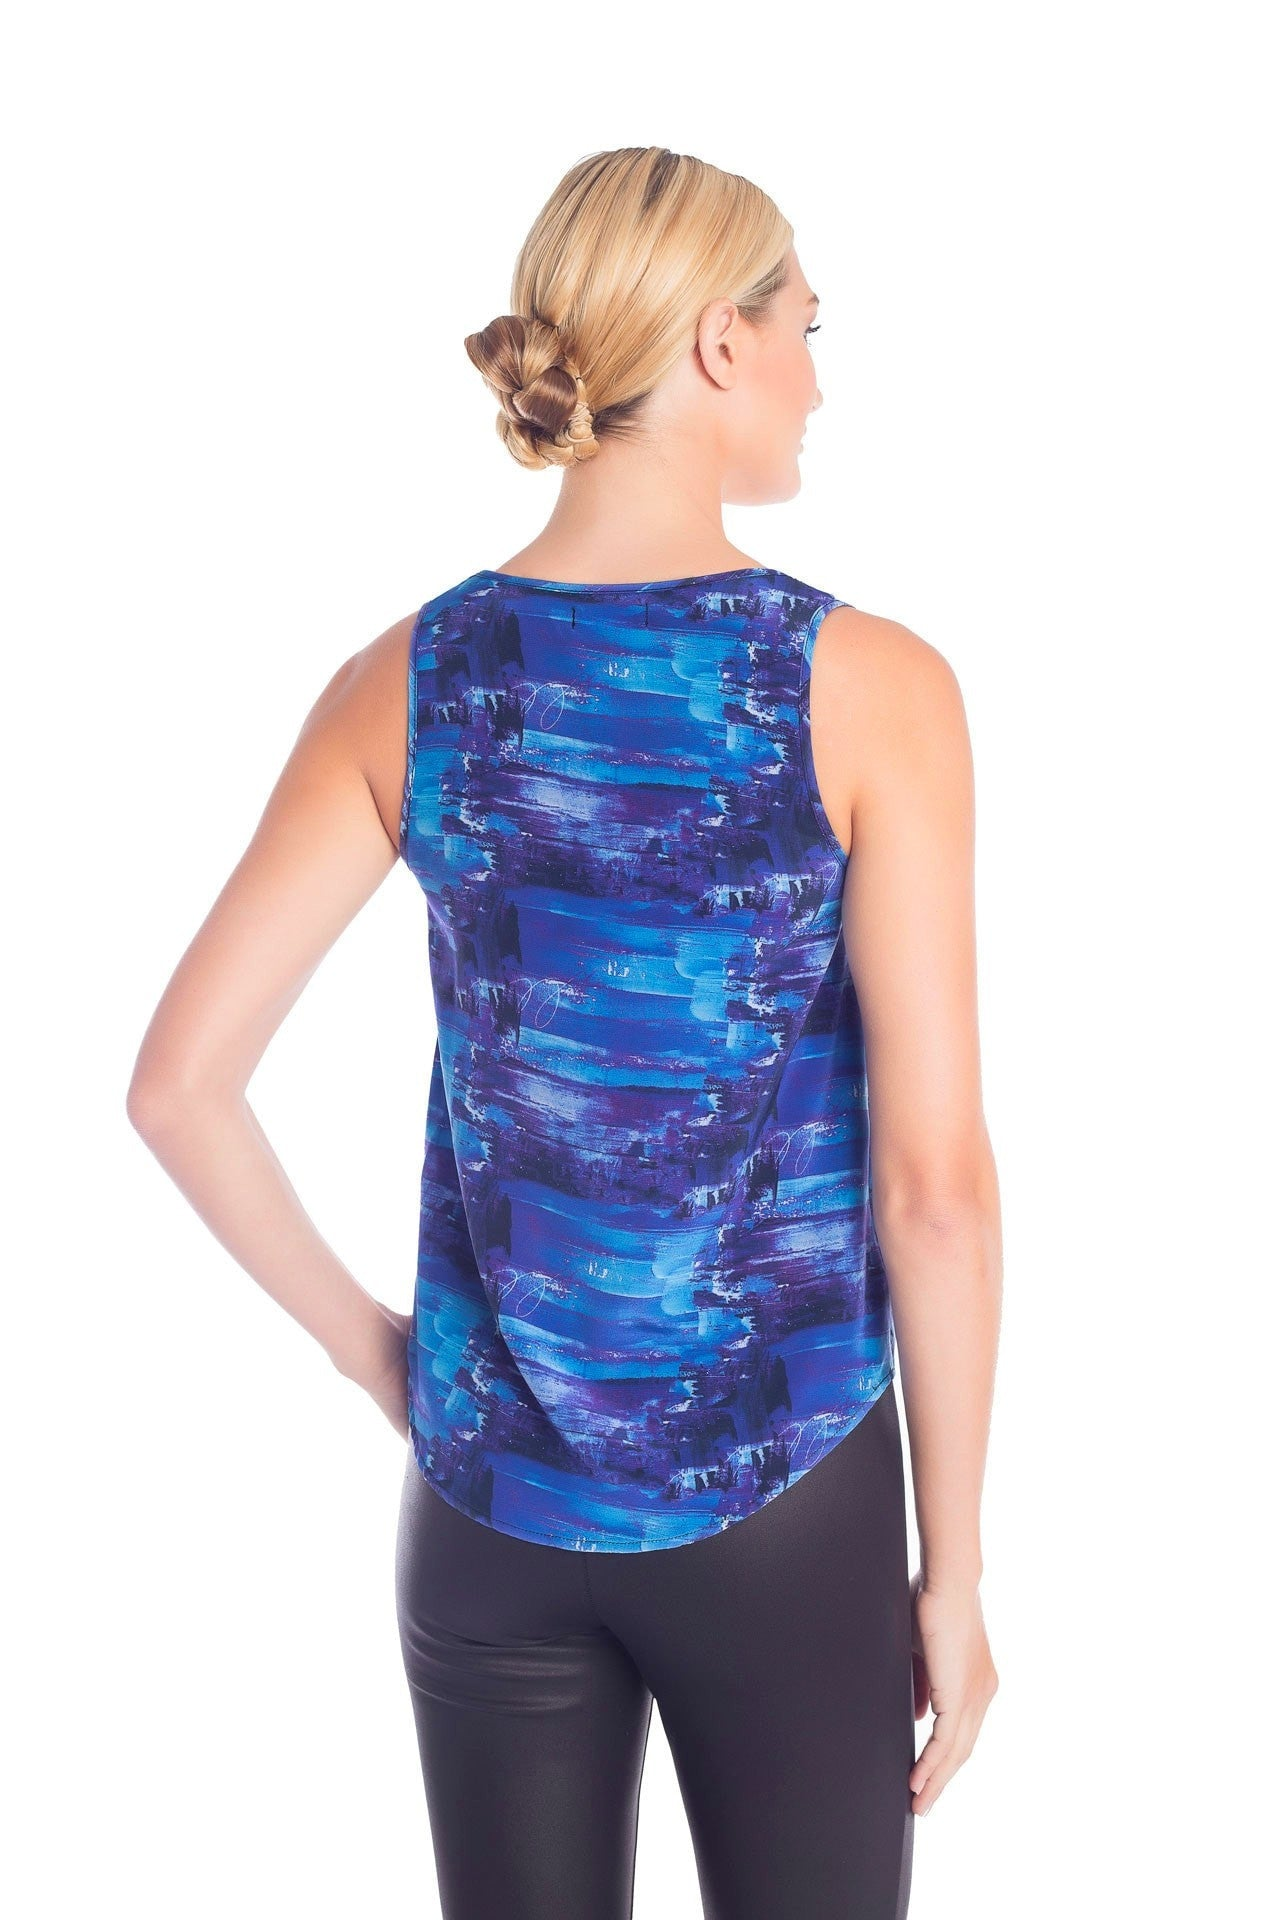 Back view of formal sleeveless top with blue print designed by artist Damian Stamer